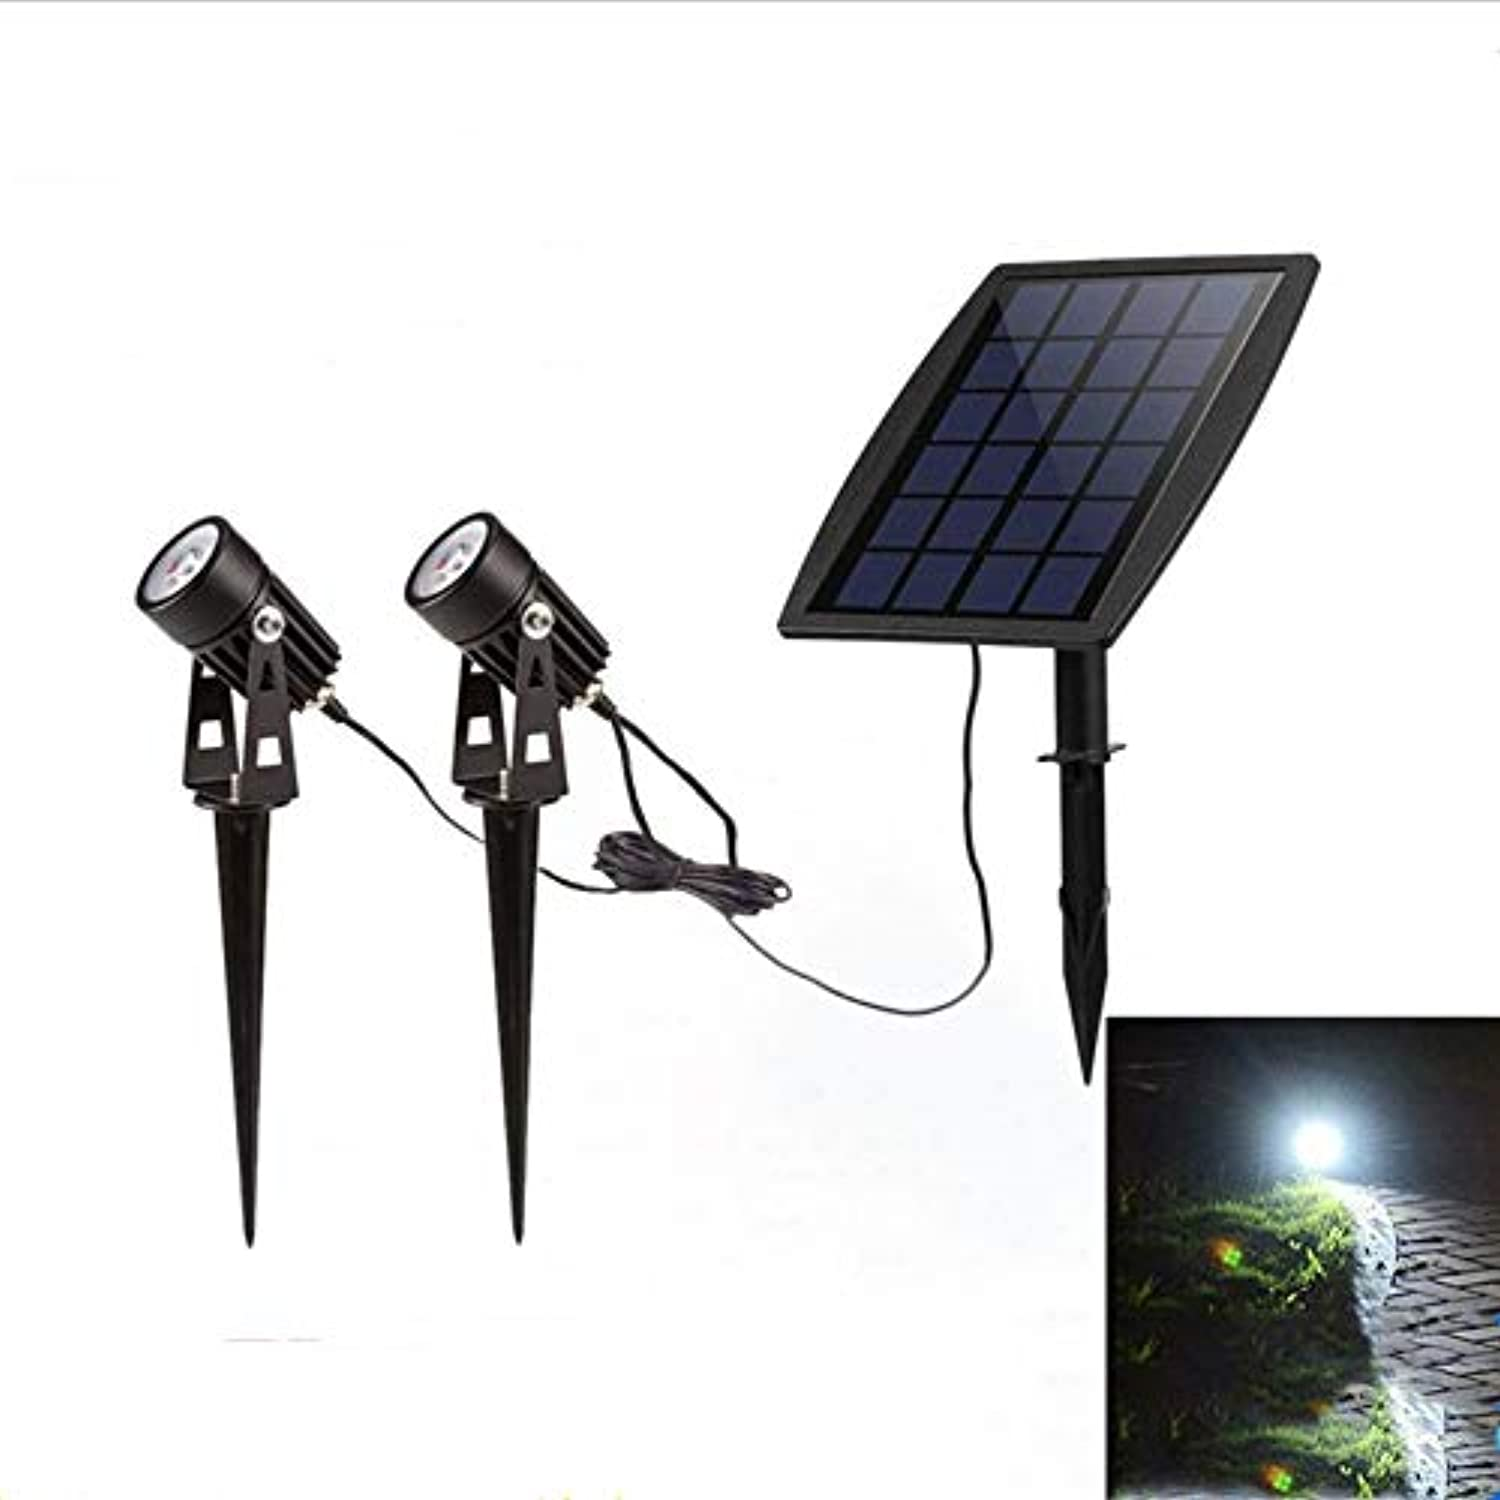 Fhlamp LED Solar Street Lamp, Outdoor Lighting, Landscape Courtyard Lamp, High Power Separate Lamp, Outdoor Tent Lamp, Outdoor Lighting Induction Lamp,Double ended Scheinwerfer